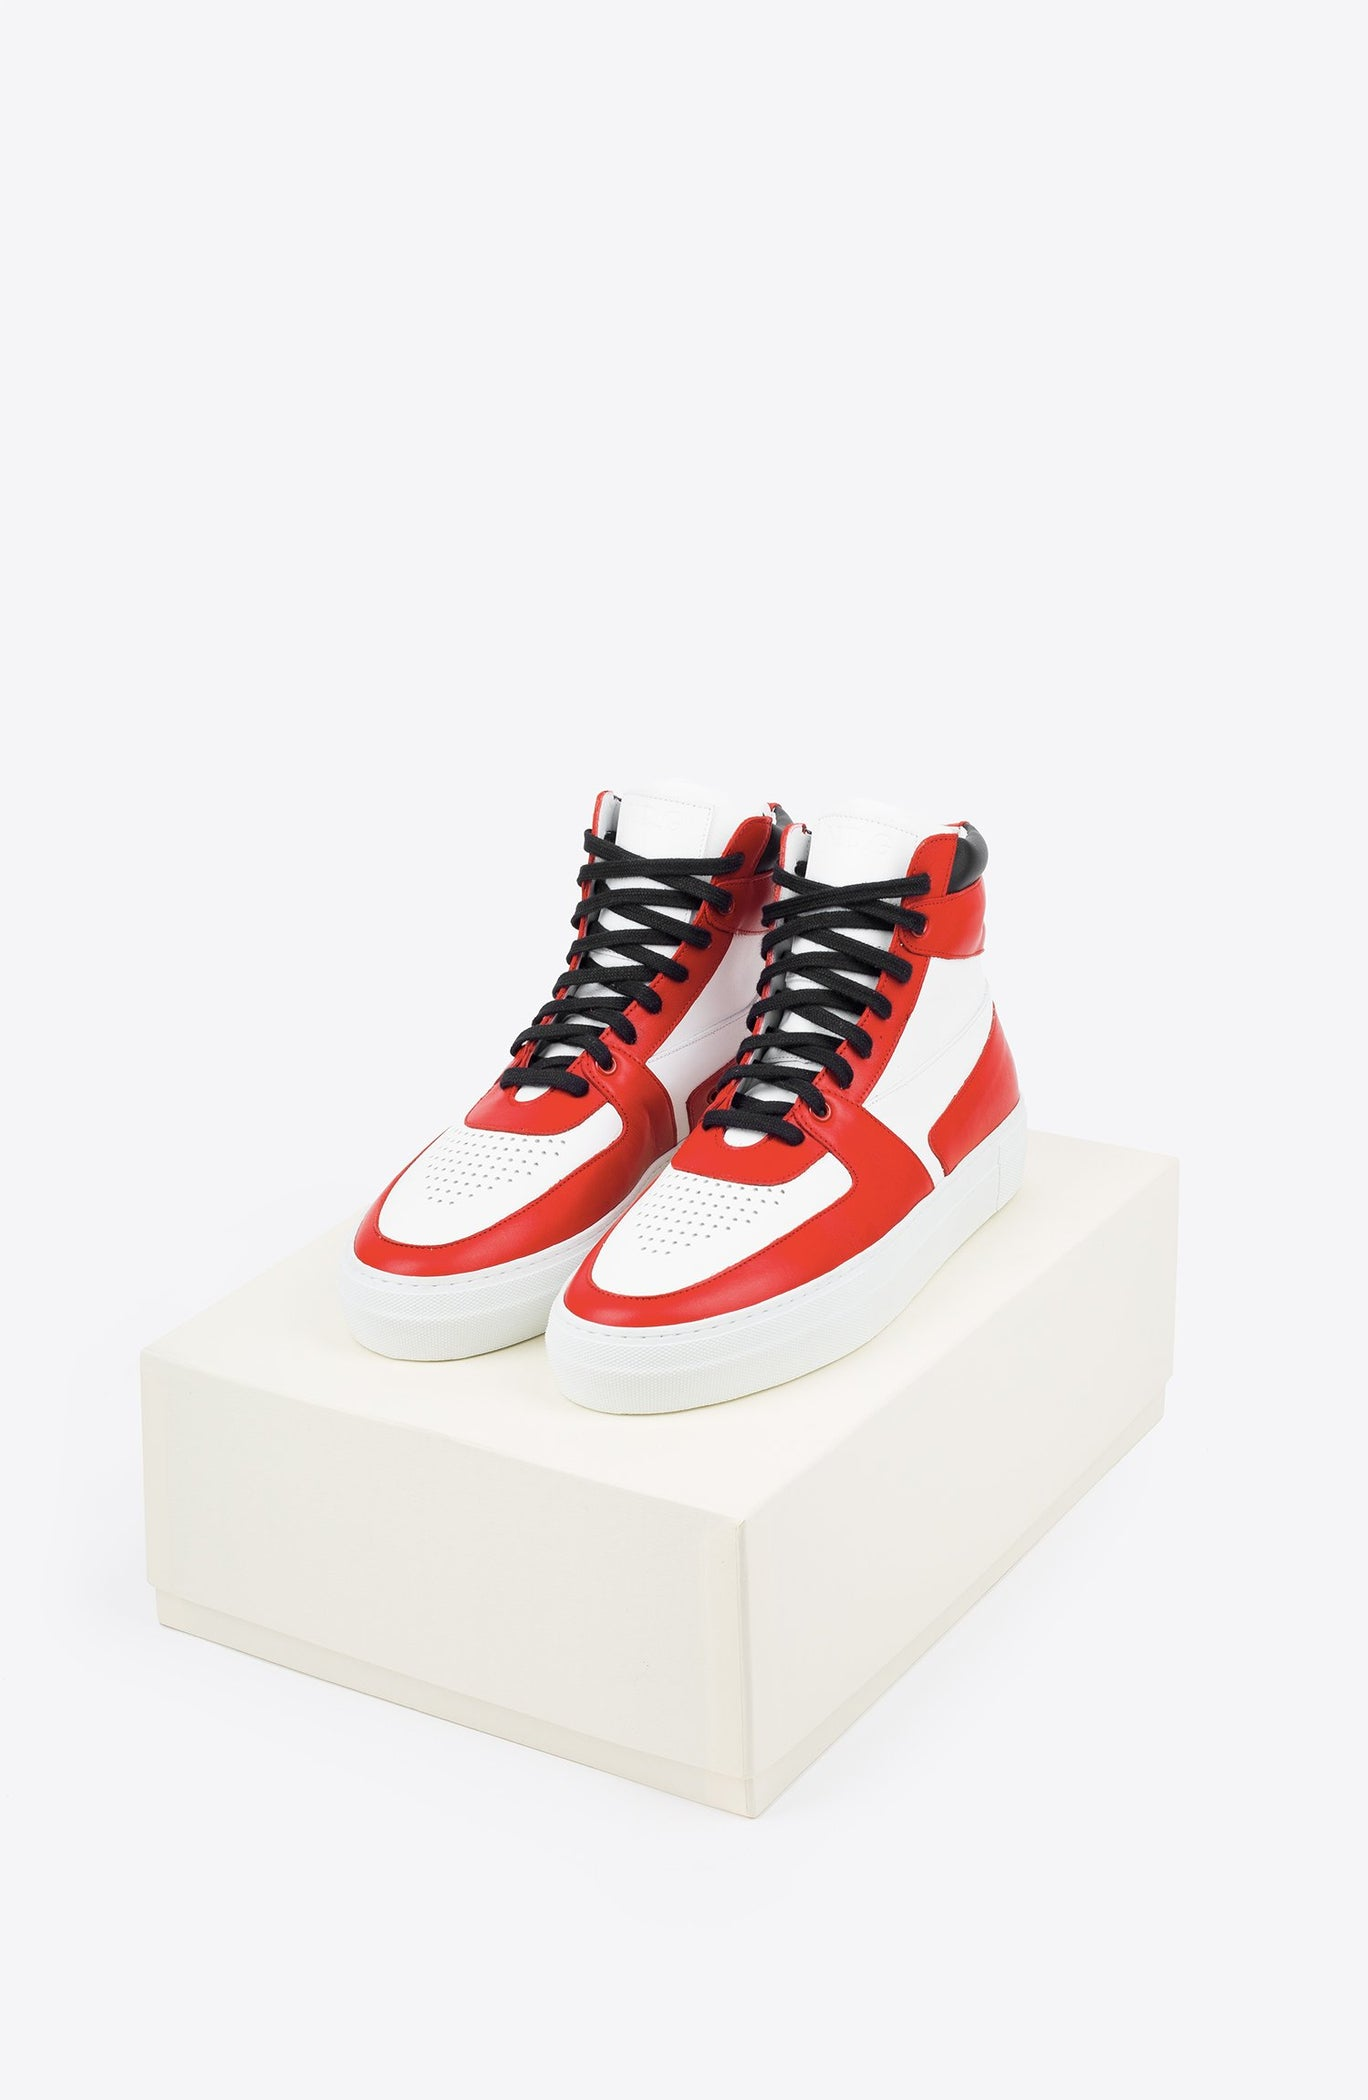 AWAY RED 1984 SNEAKER